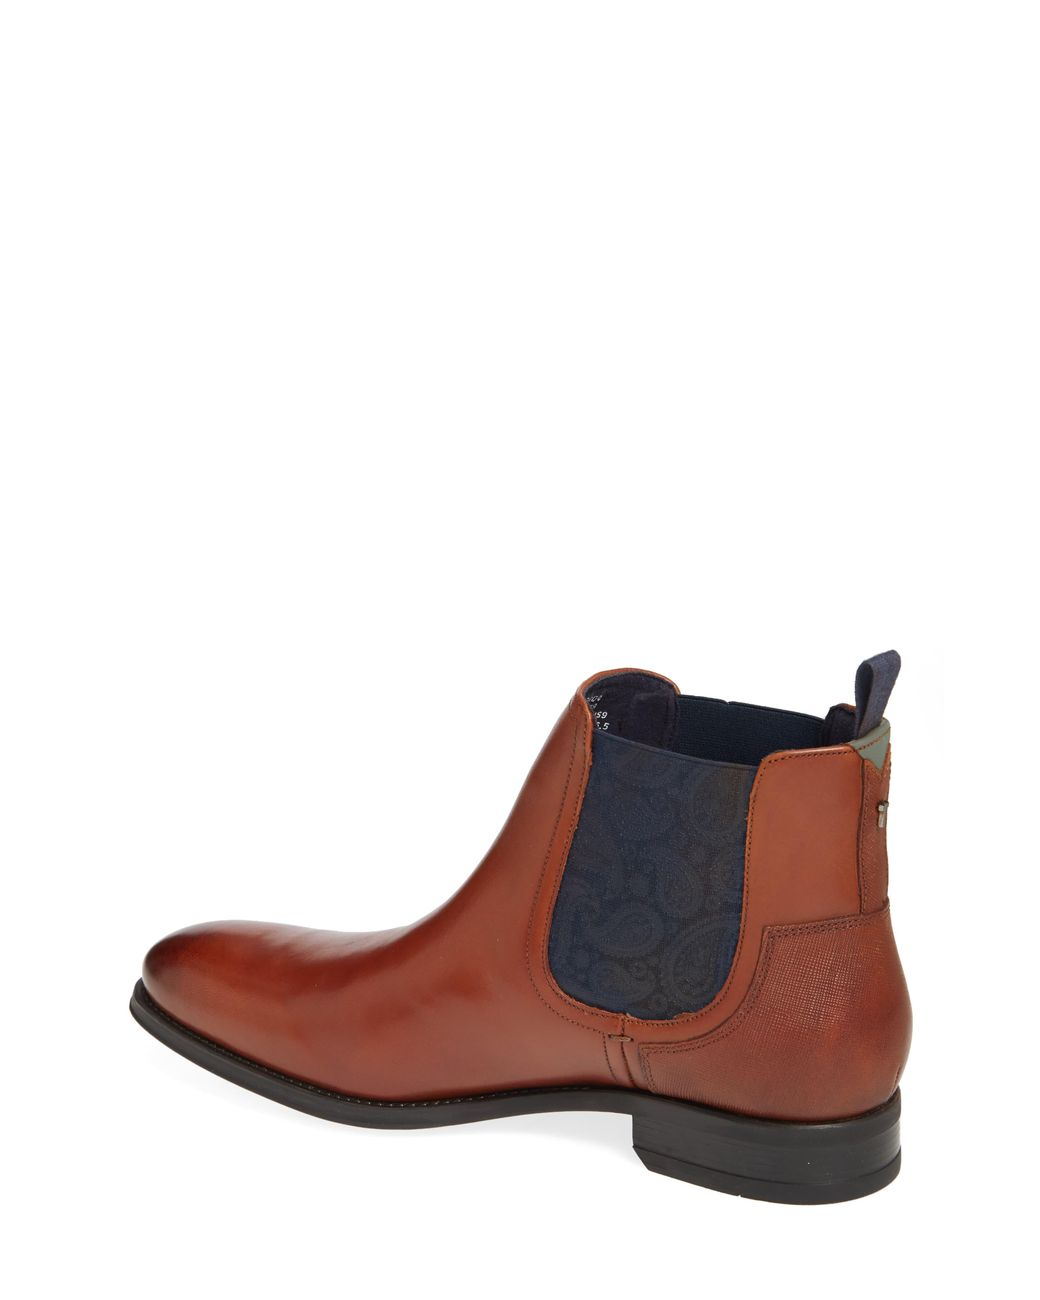 Ted Baker Leather Tradd Chelsea Boot in